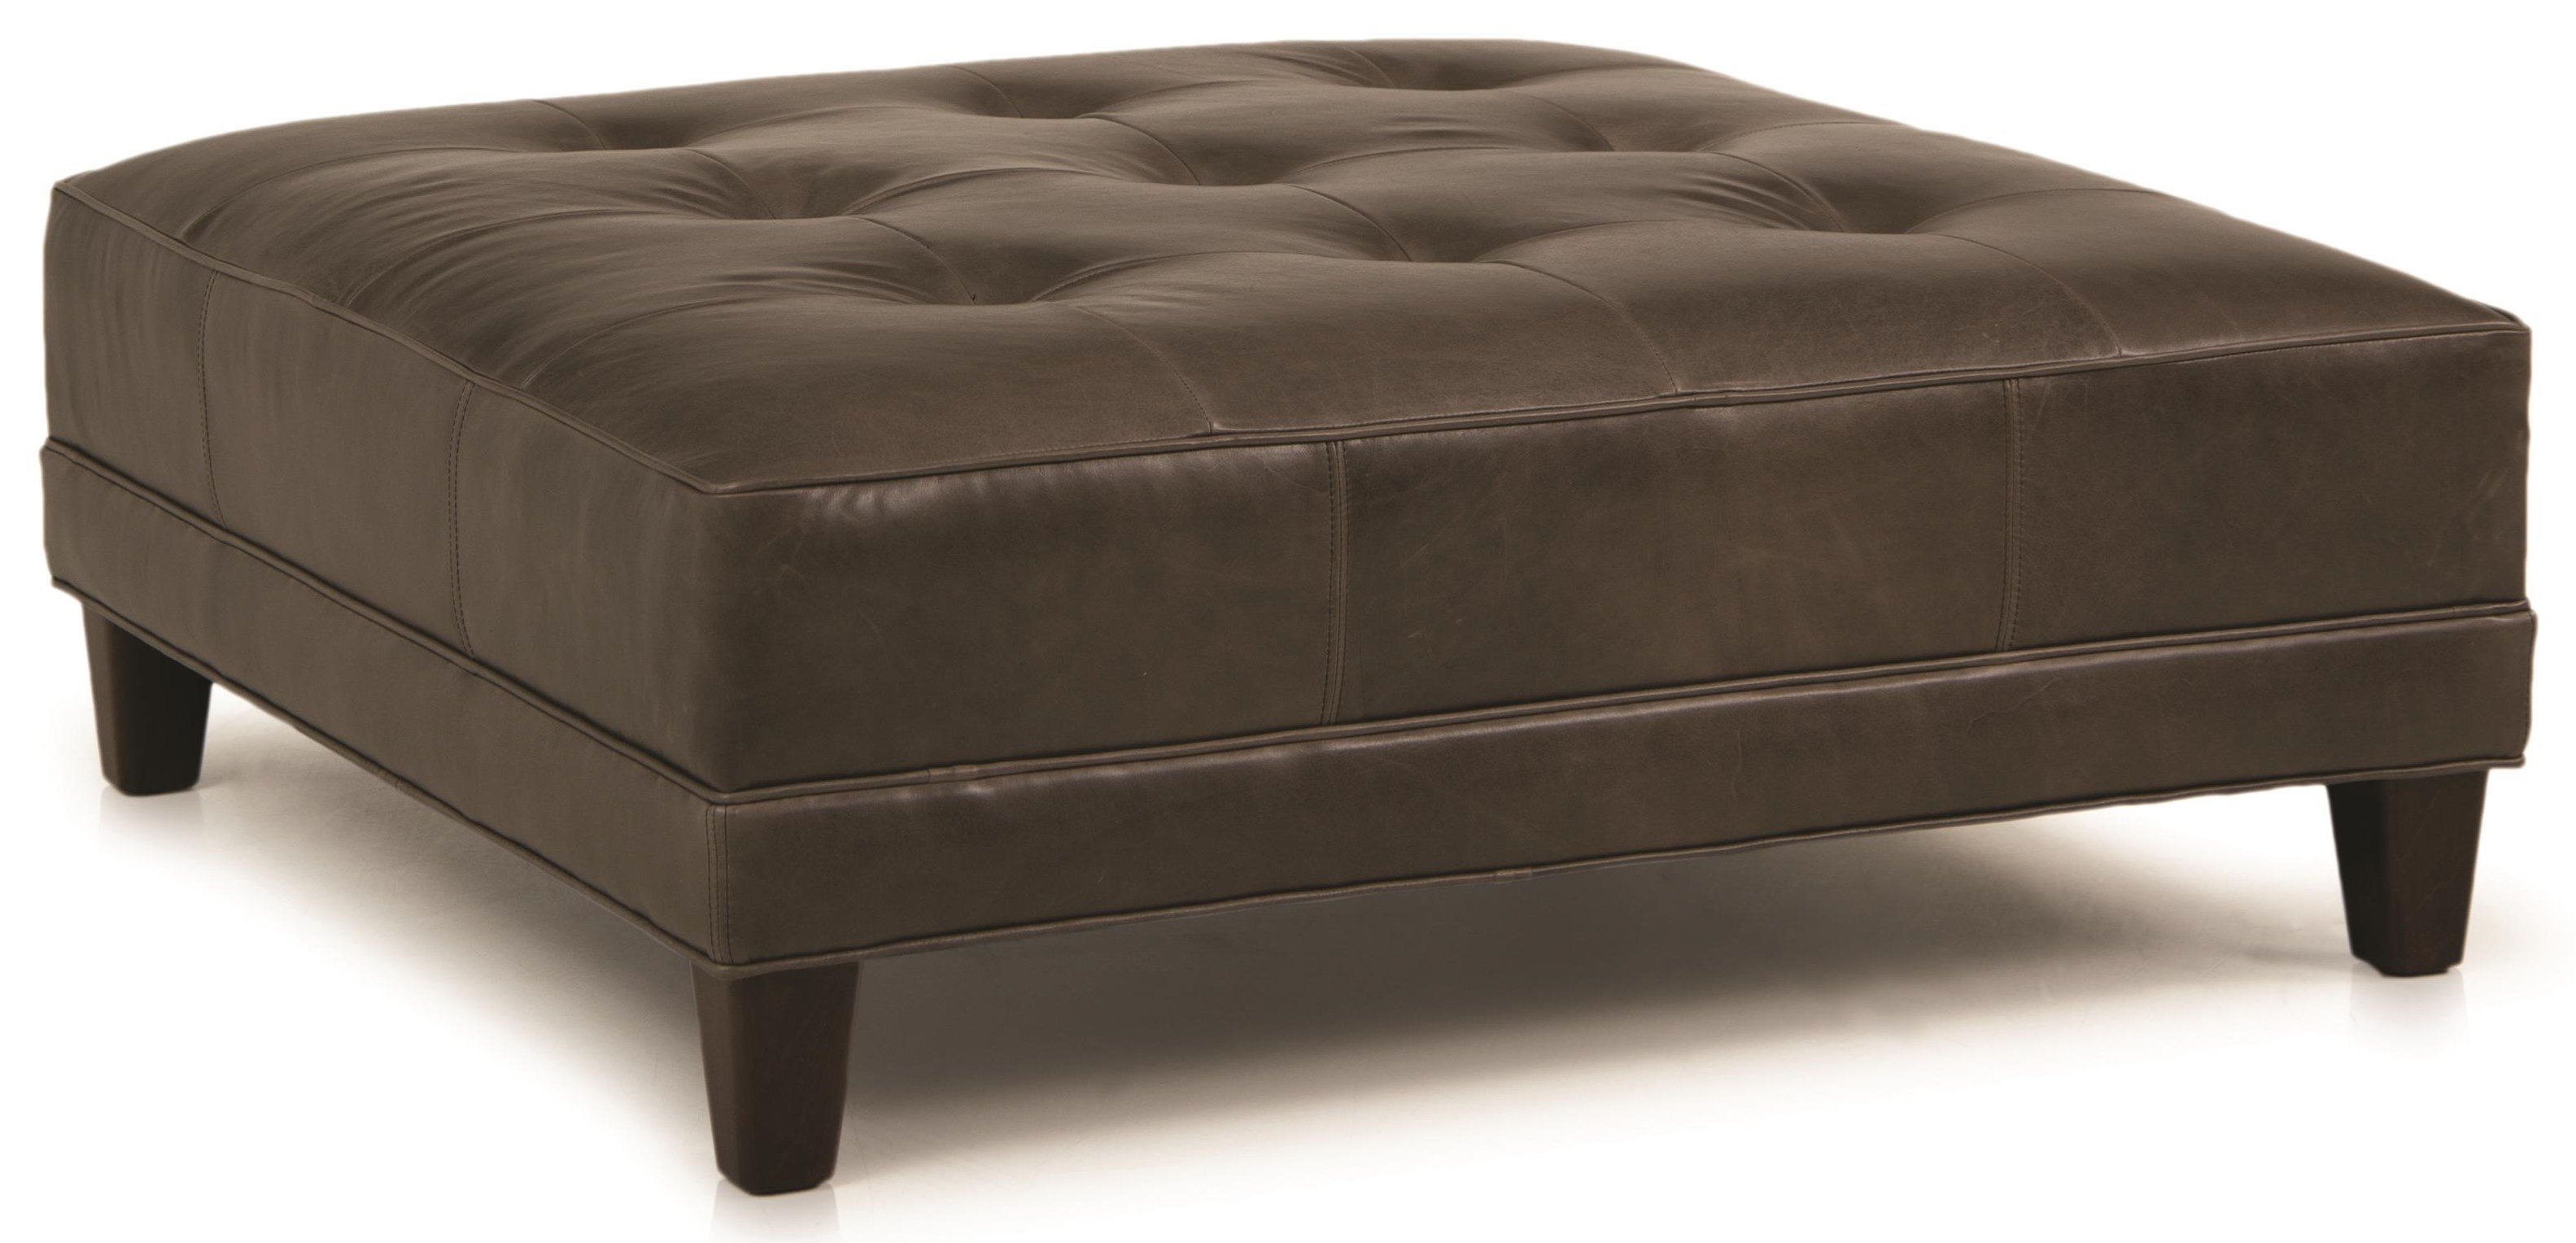 Upton Cocktail Ottoman by Smith Brothers at Crowley Furniture & Mattress